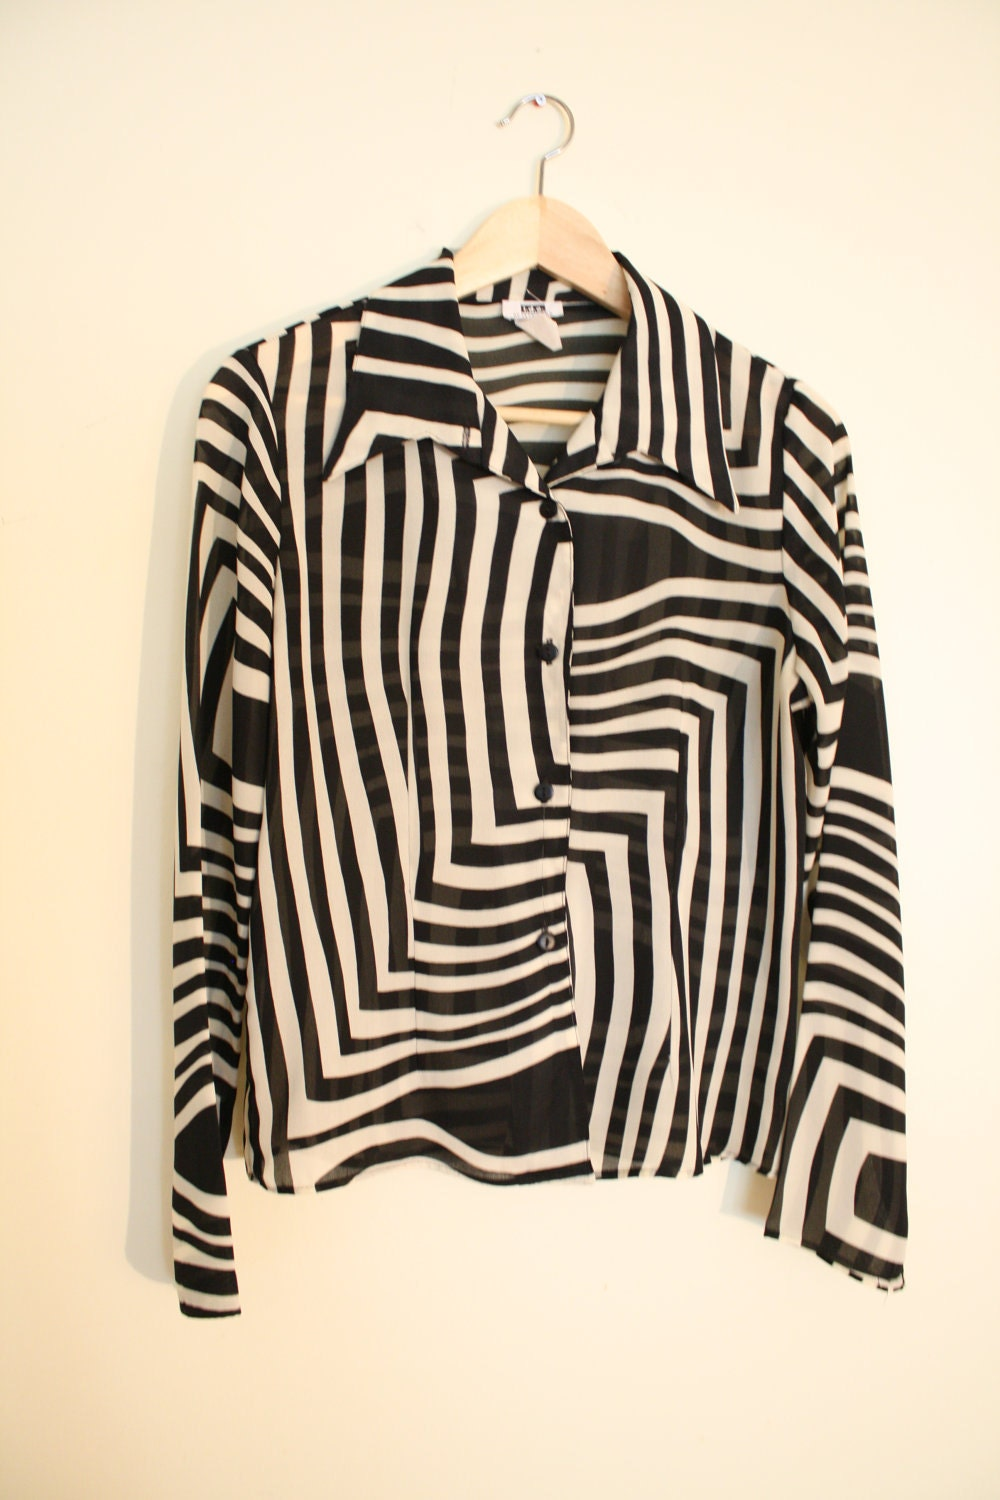 Zebra - Vintage Black n White Sheer Blouse